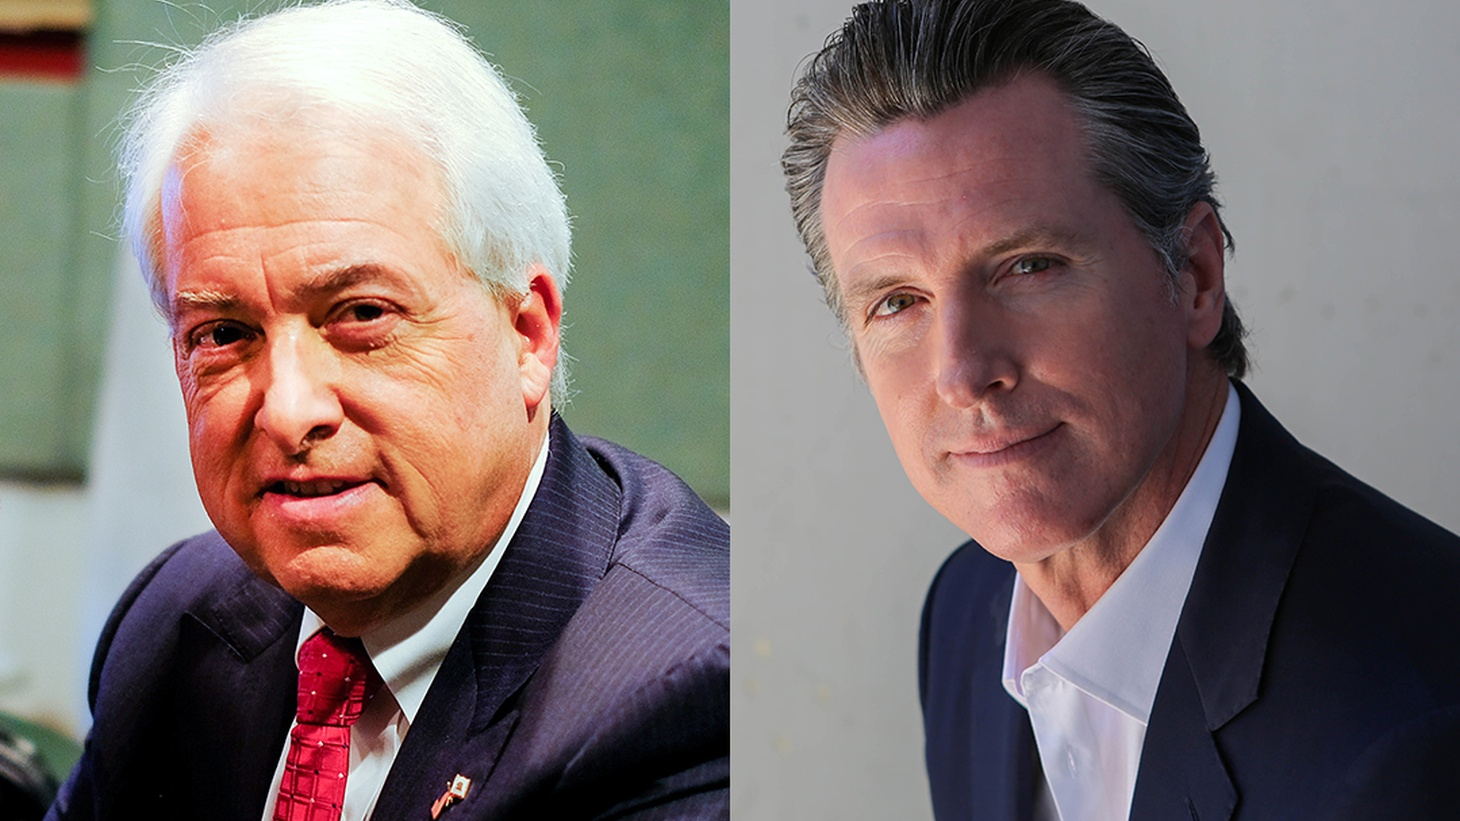 A debate between Gavin Newsom and John Cox hosted by KQED.